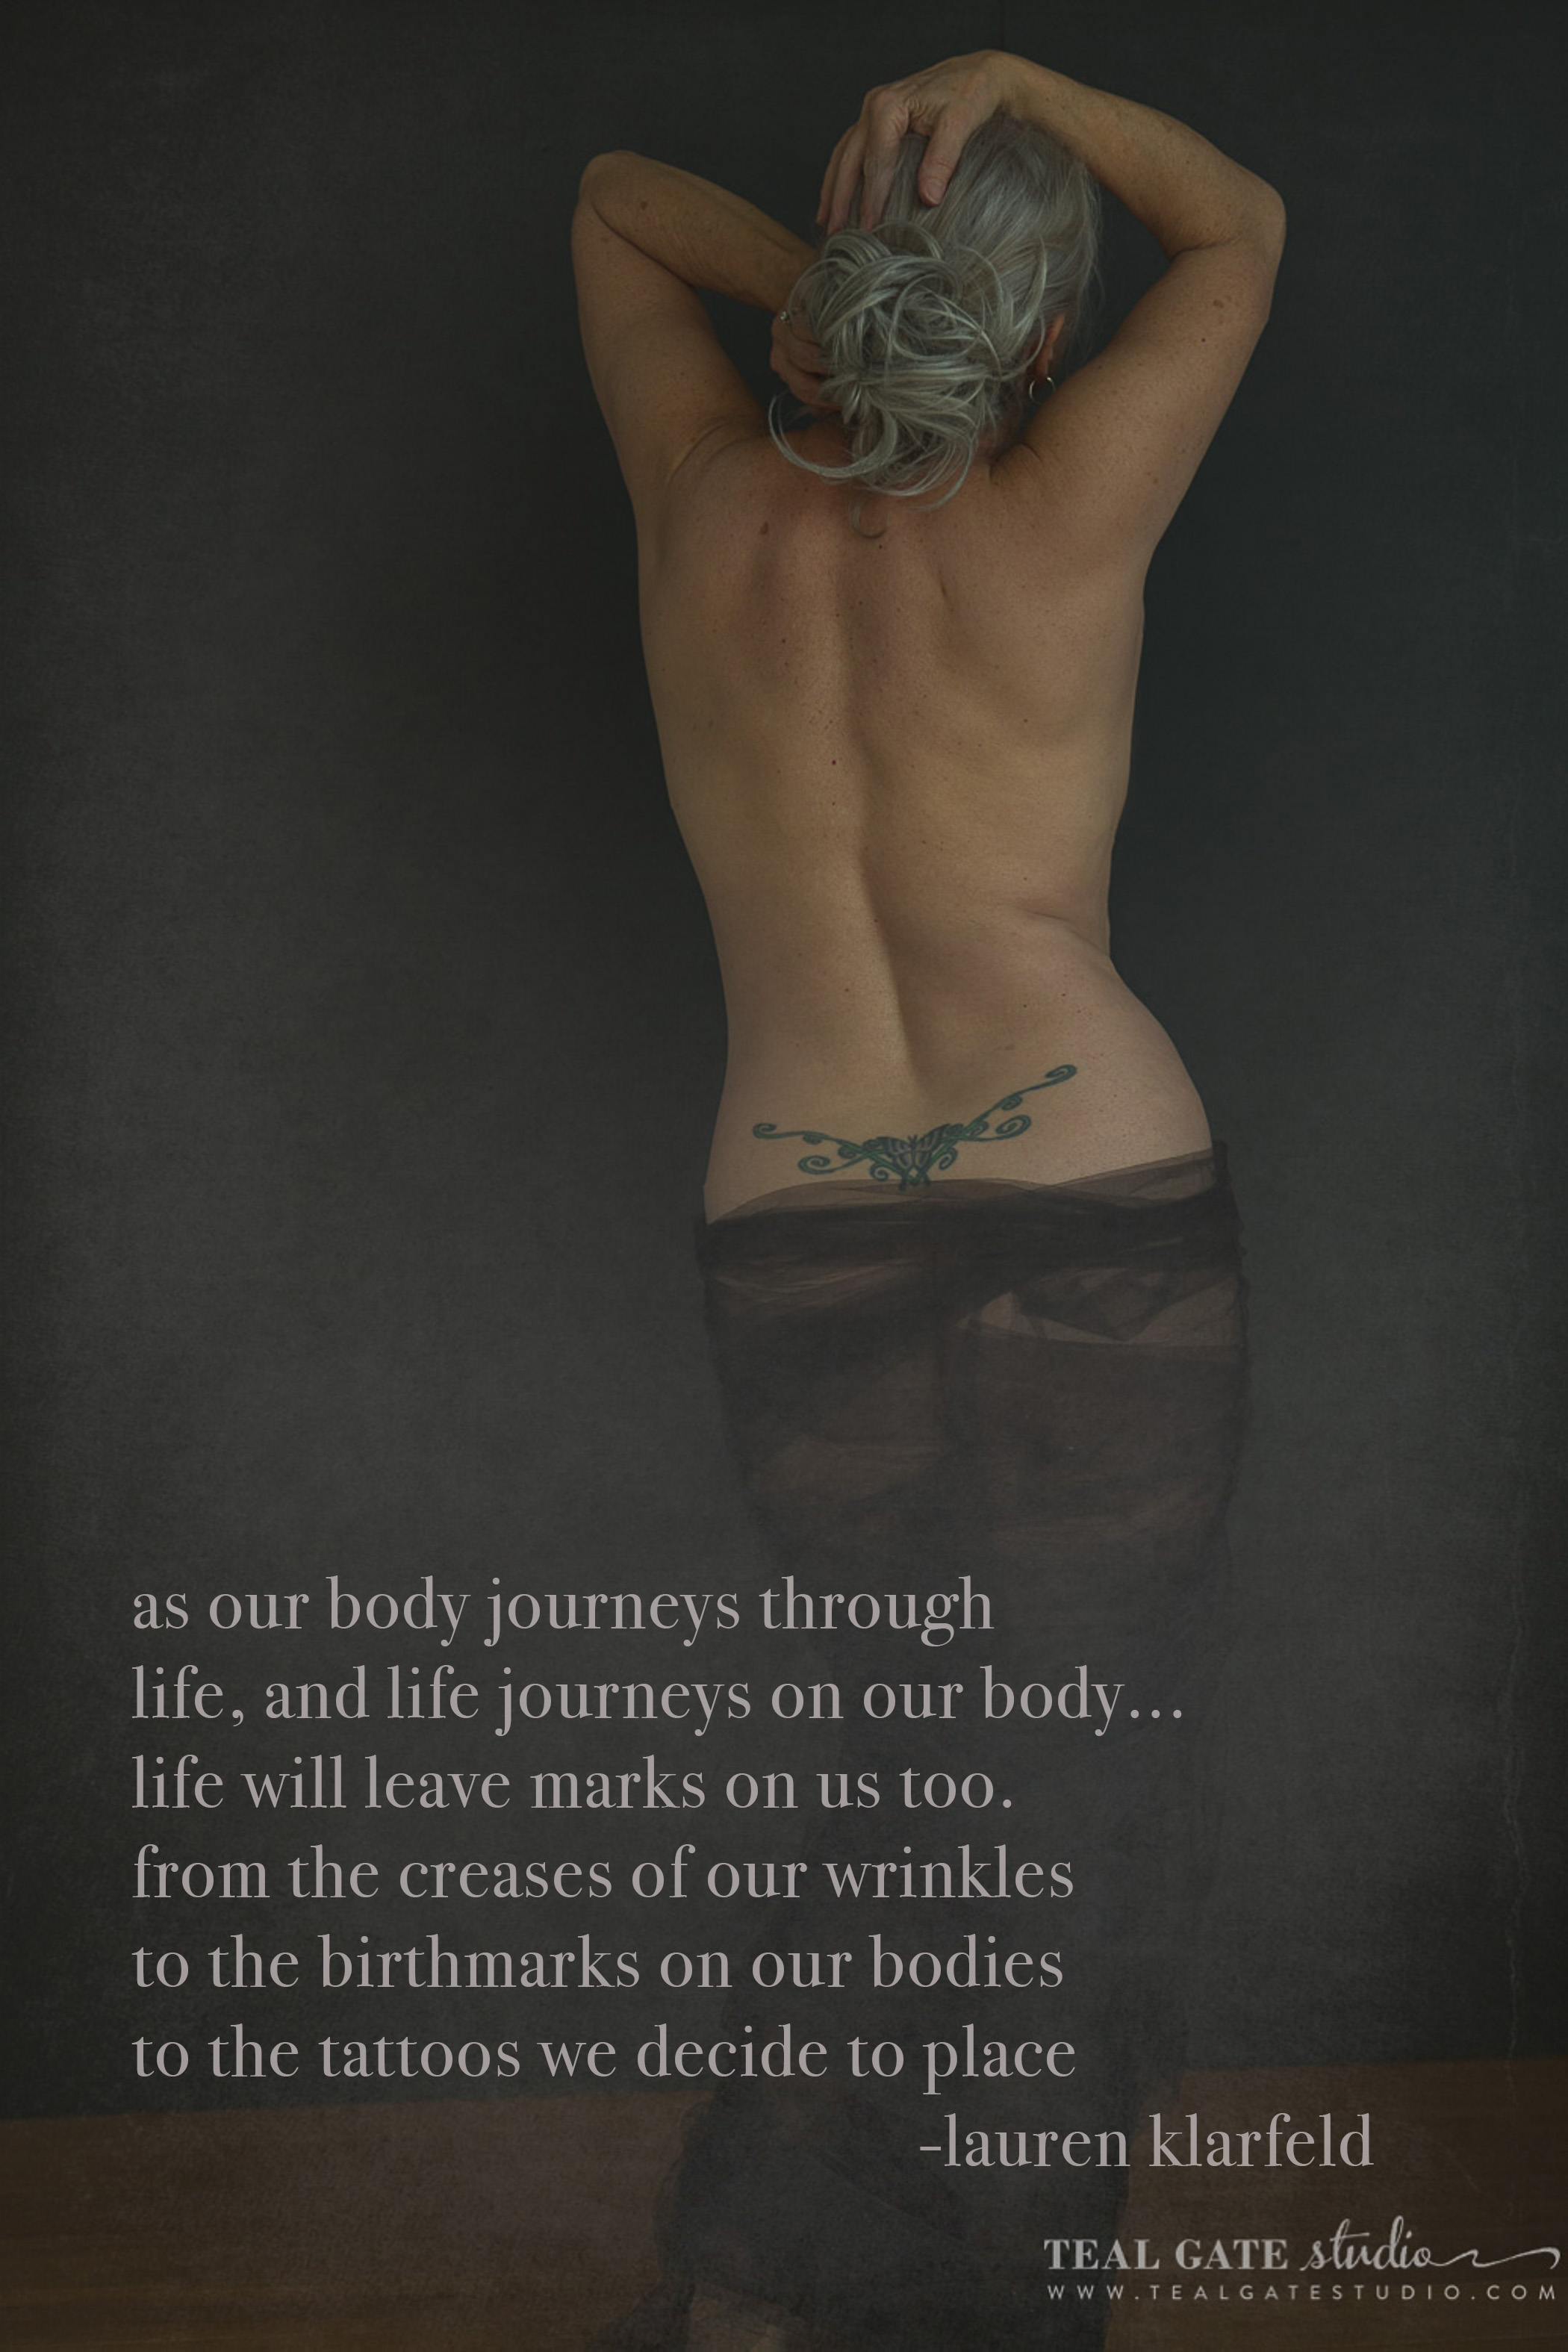 Yes! - I totally and completely love and accept myself at this age now and in this body.